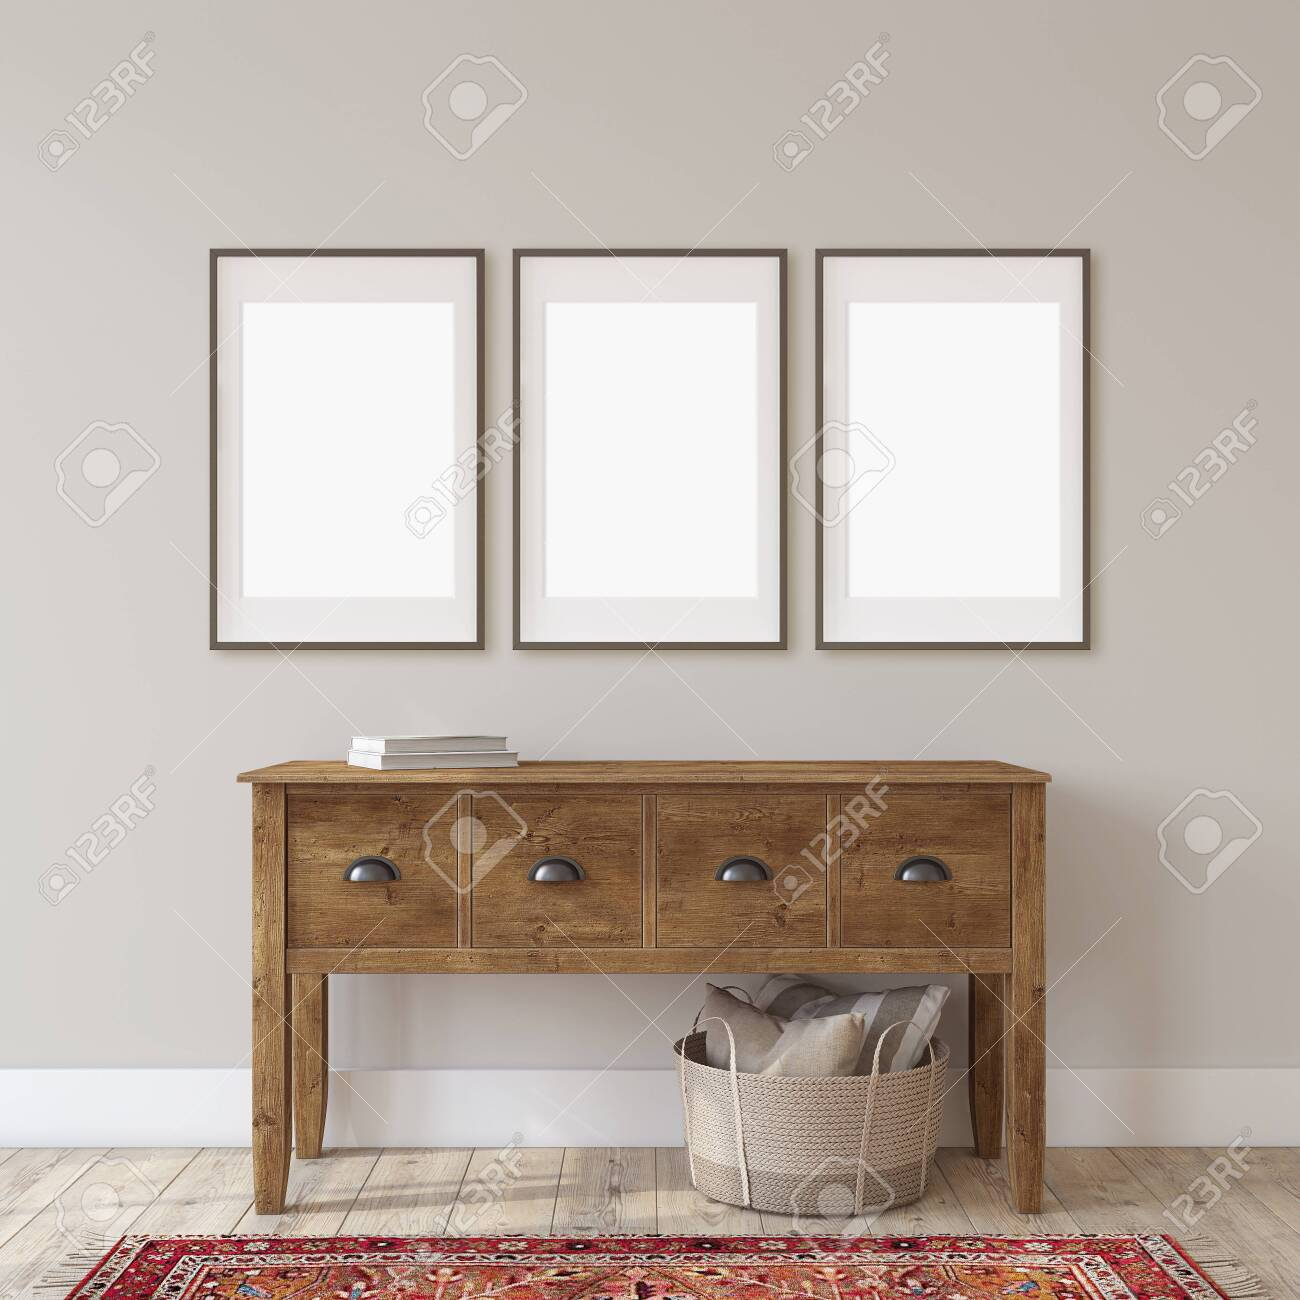 Farmhouse entryway. Wooden console table near gray wall. Frame mockup. Three black frames on the wall. 3d render. - 118411817